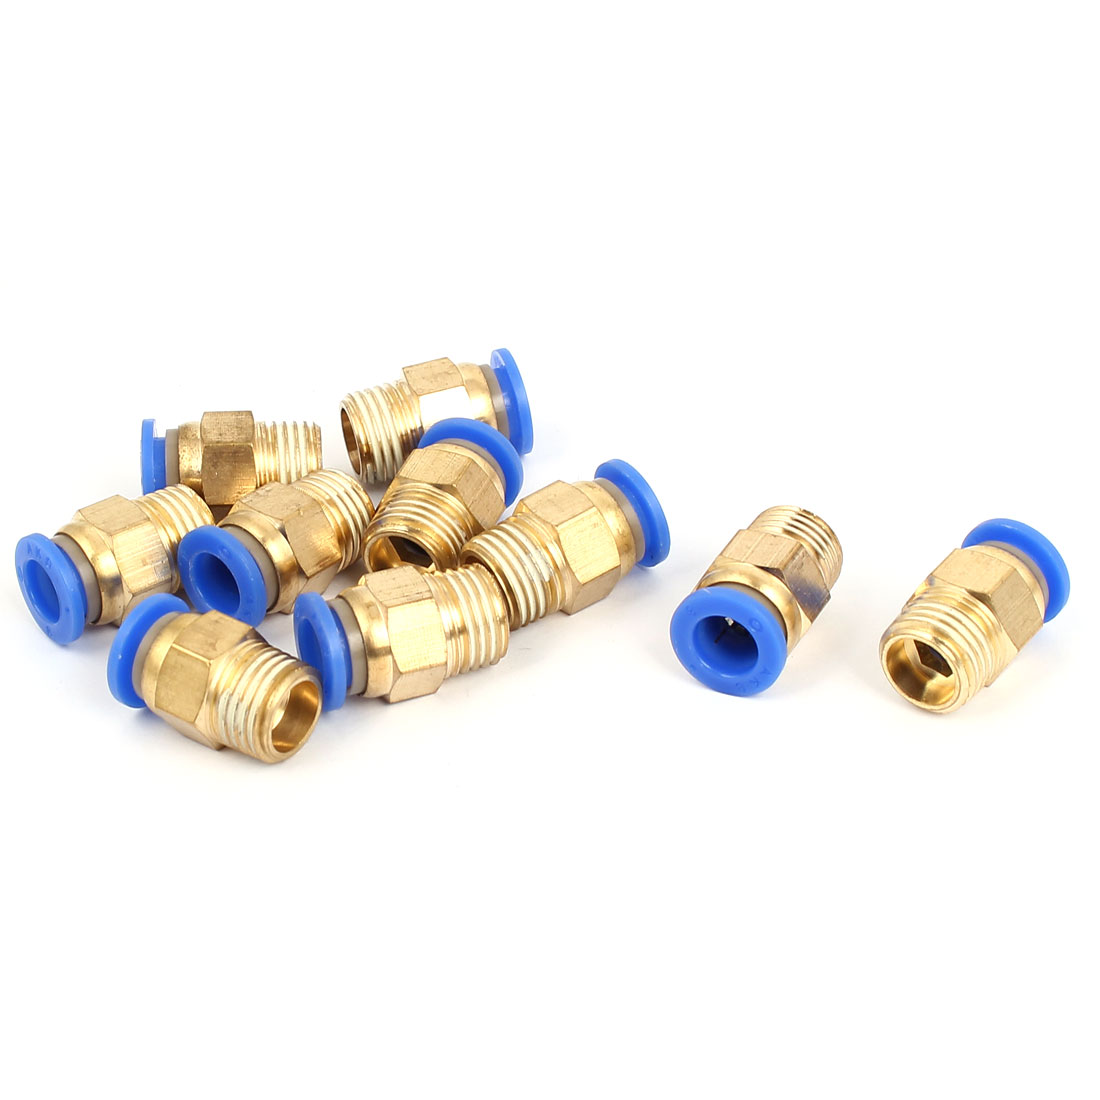 8mm Tube 1/4BSP Male Thread Quick Connector Pneumatic Air Fittings 10pcs